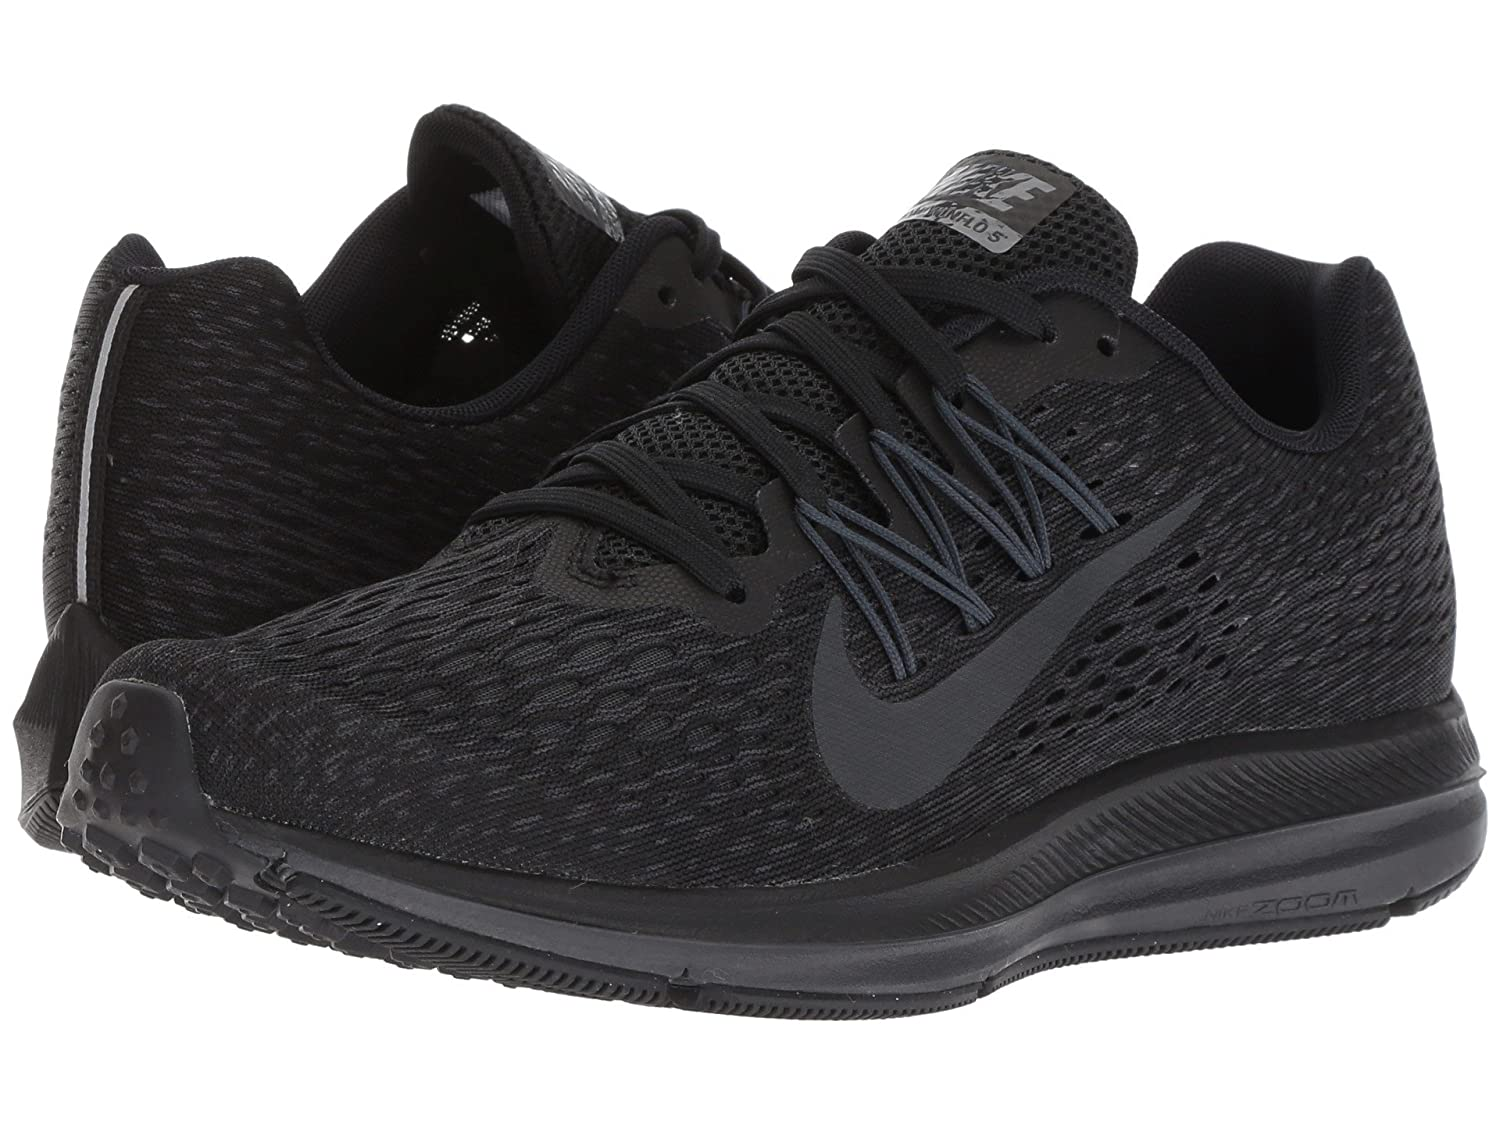 [NIKE(ナイキ)] レディーステニスシューズスニーカー靴 Air Zoom Winflo 5 Black/Anthracite 8 (25cm) B - Medium B07FB82MHT